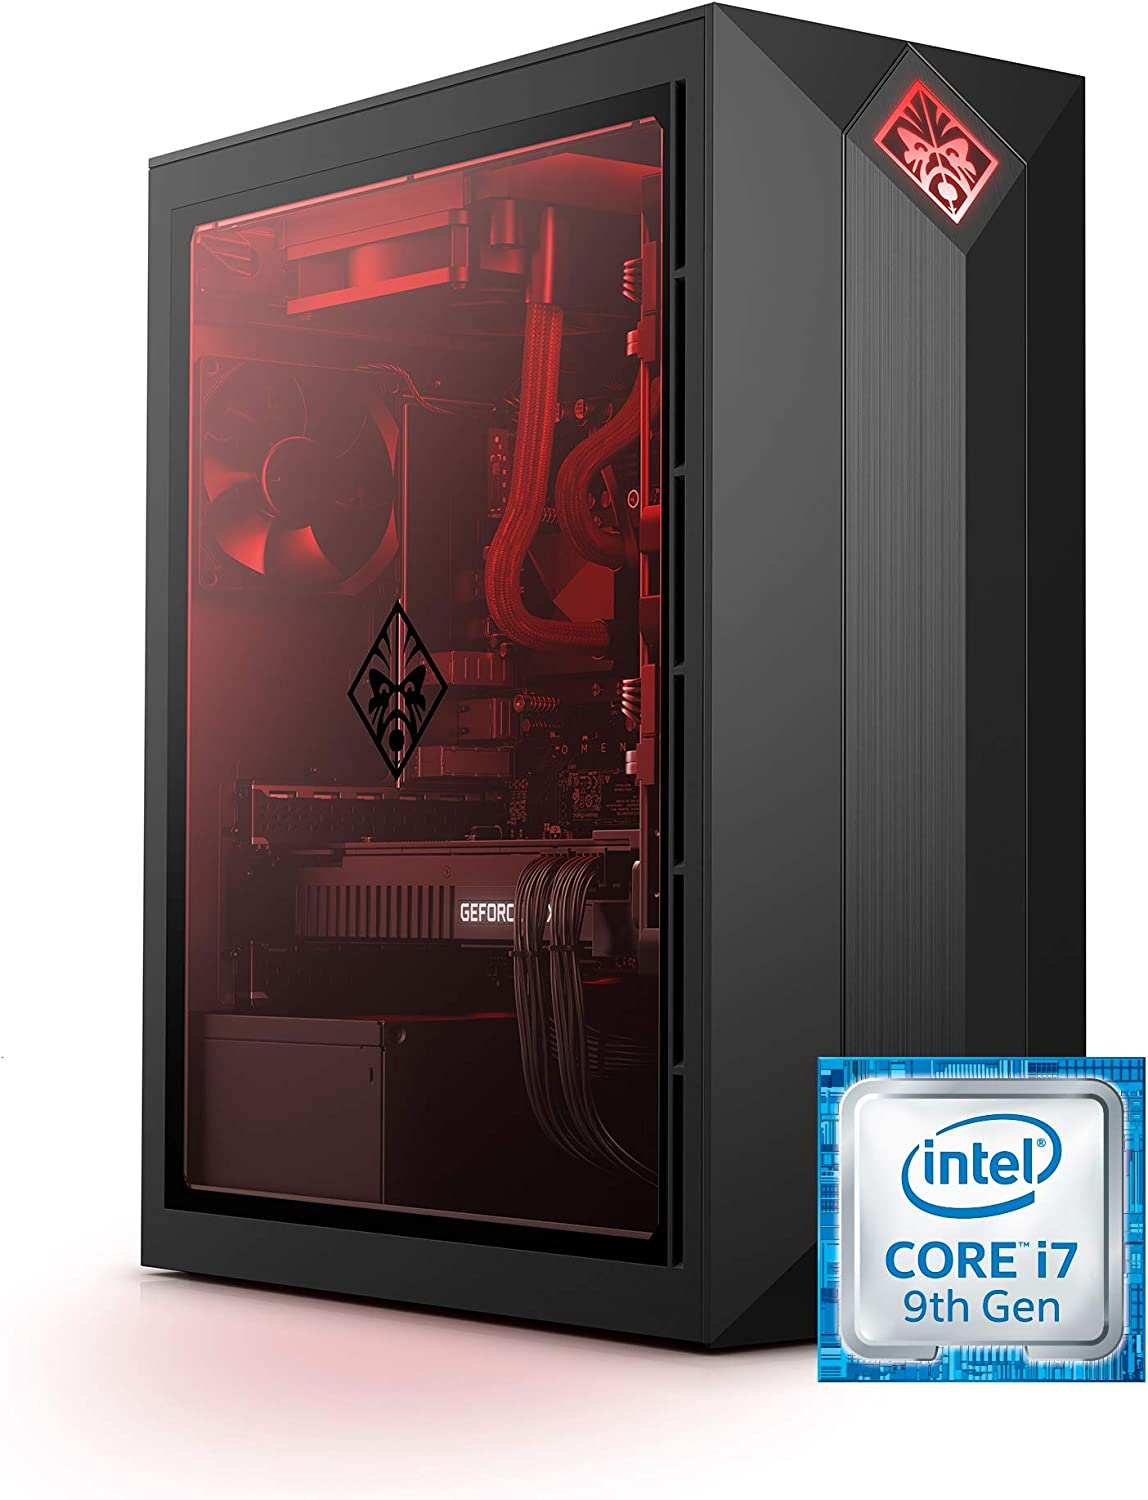 OMEN by HP Obelisk Gaming Desktop Computer, Intel Core i7-9700K Processor, NVIDIA GeForce RTX 2070 Super 8 GB, HyperX 16 GB RAM, 512 GB SSD, VR Ready, Windows 10 Home (875-1120, Black)